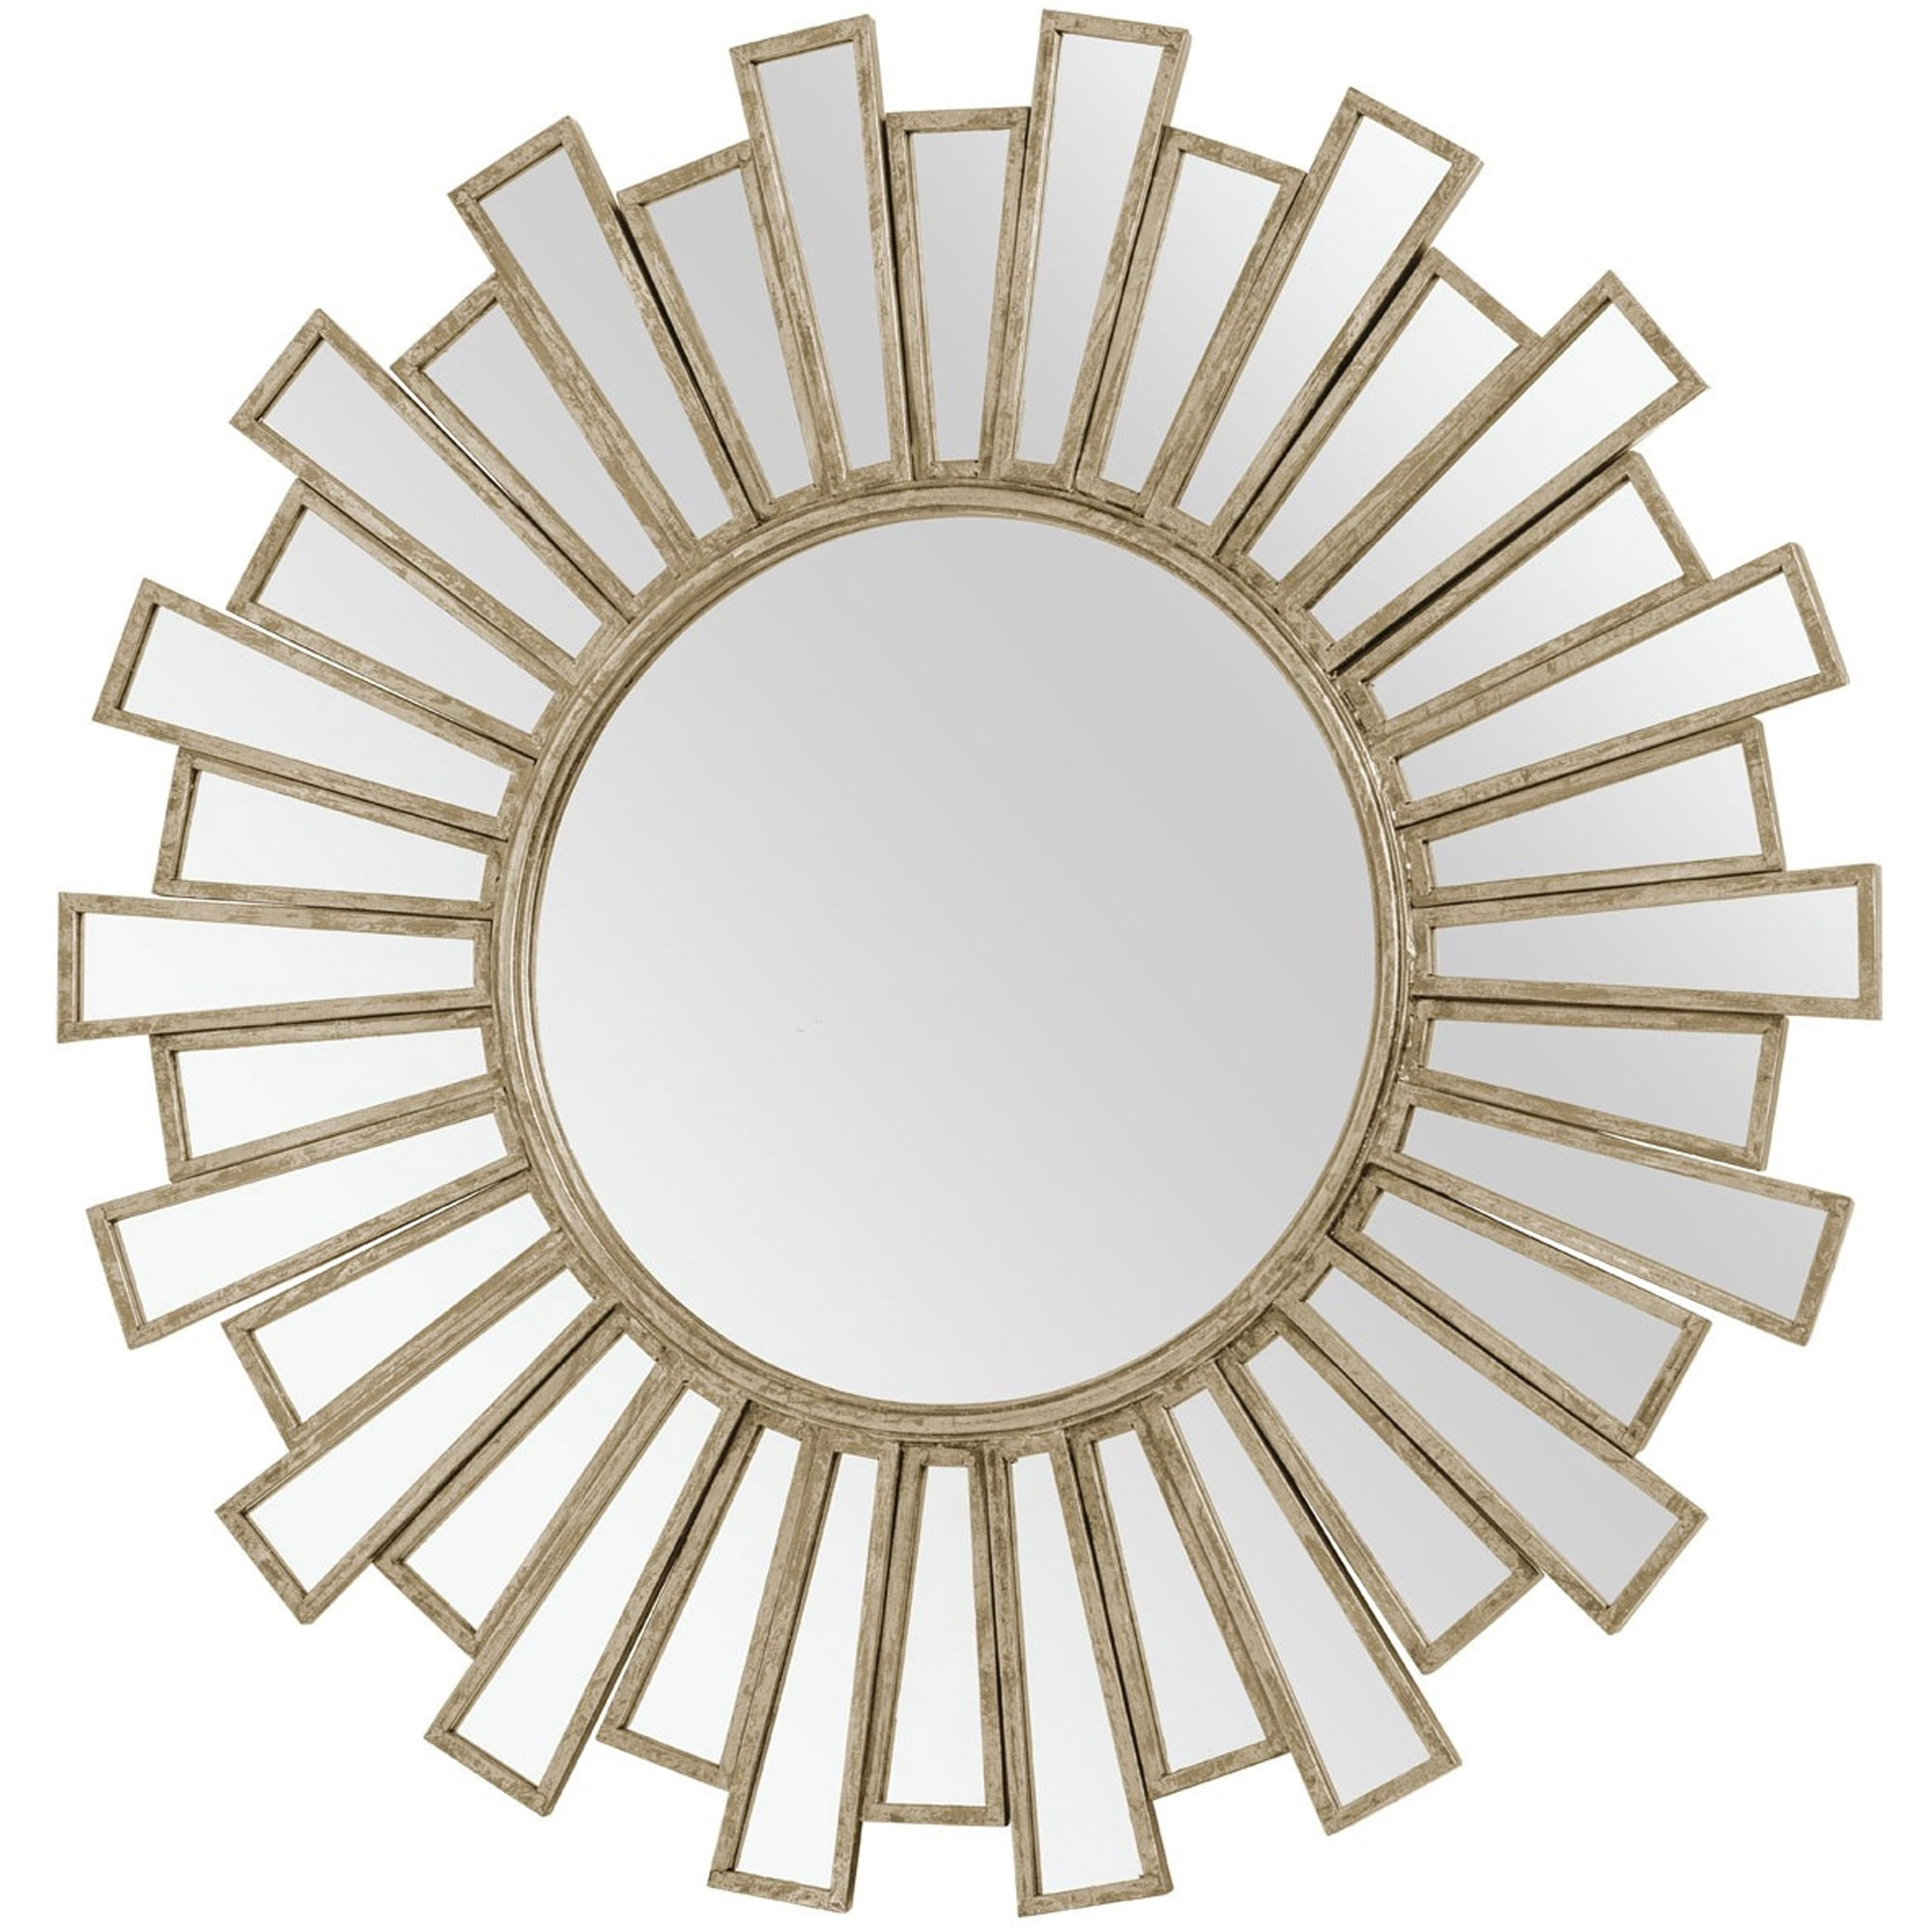 Arinna Gold Wall Mirror With Regard To Most Current Gold Wall Mirrors (View 1 of 20)